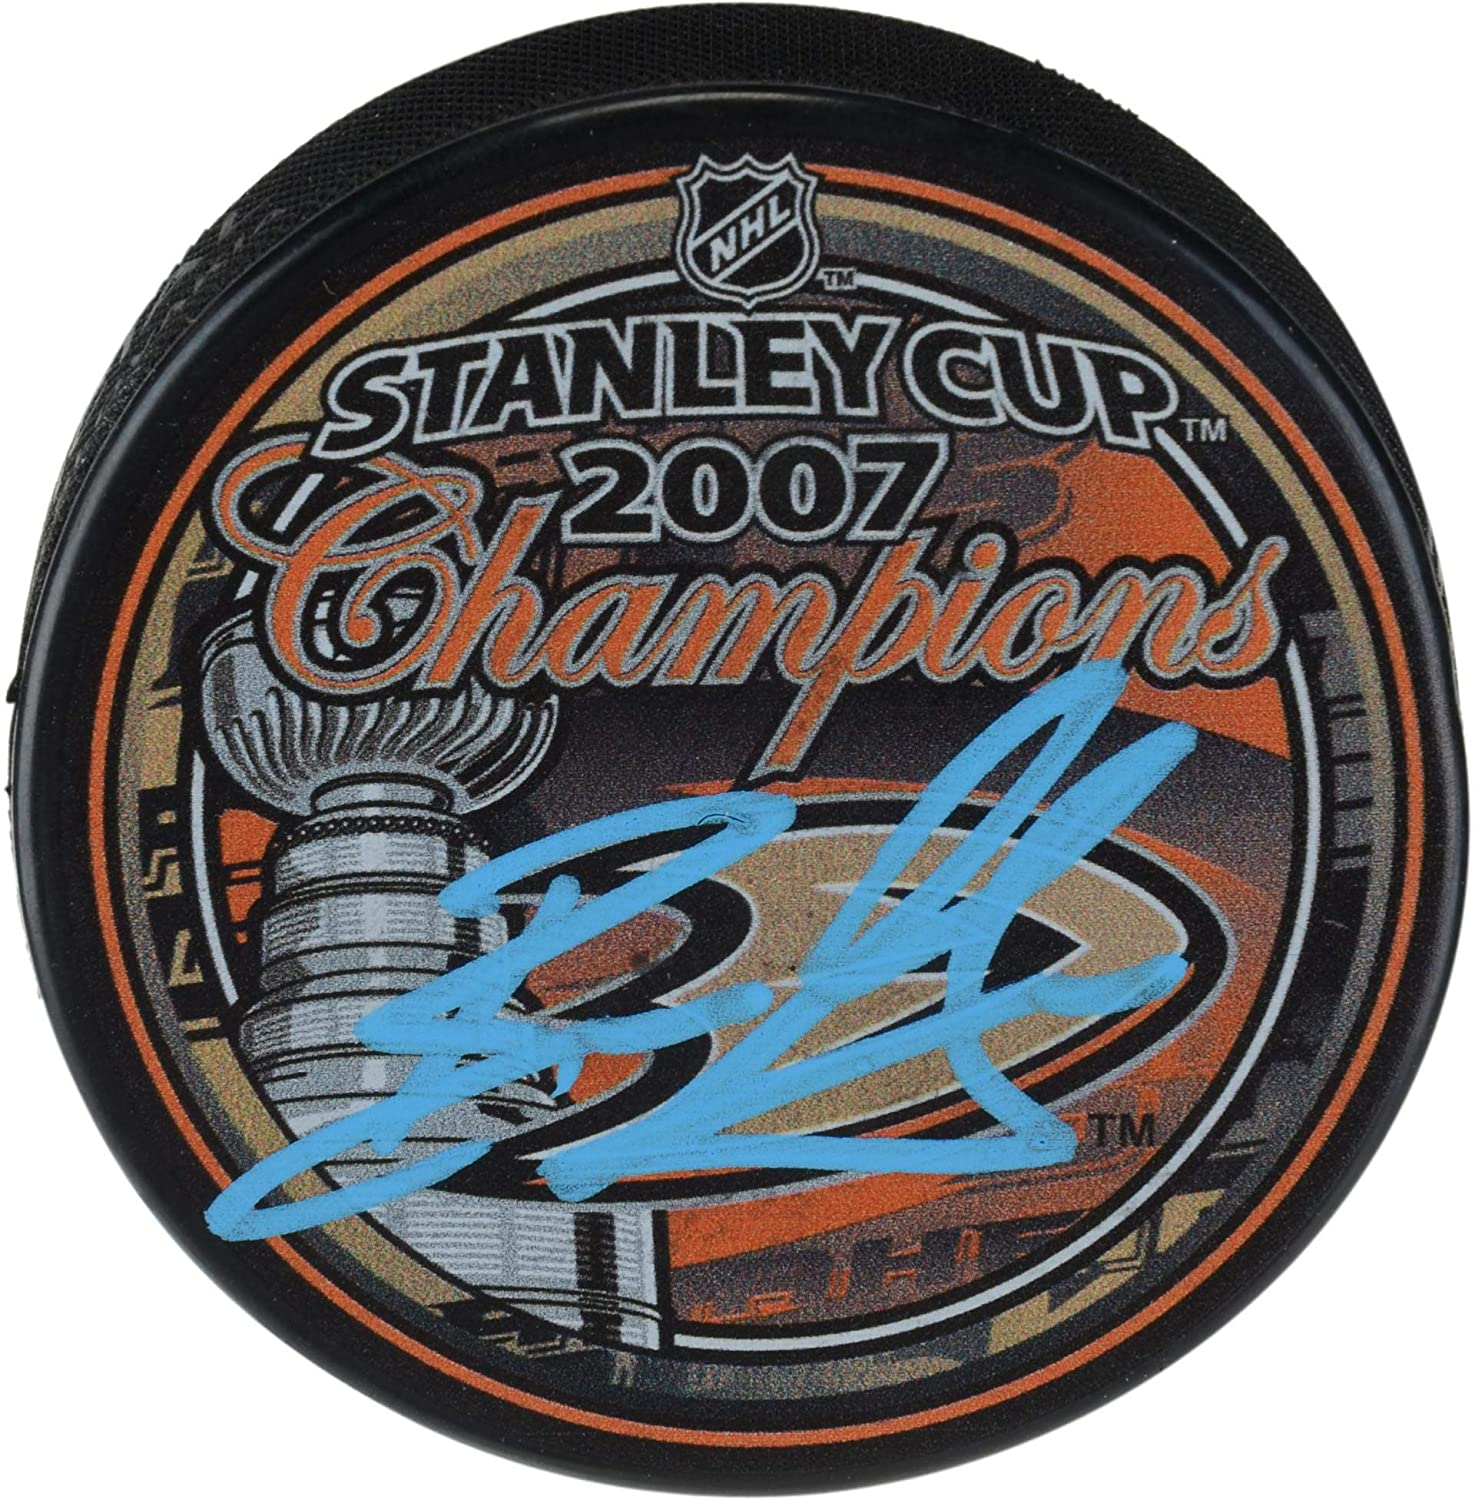 Ryan Getzlaf Anaheim Ducks Autographed 2007 Stanley Cup Champions Logo Hockey Puck - Fanatics Authentic Certified